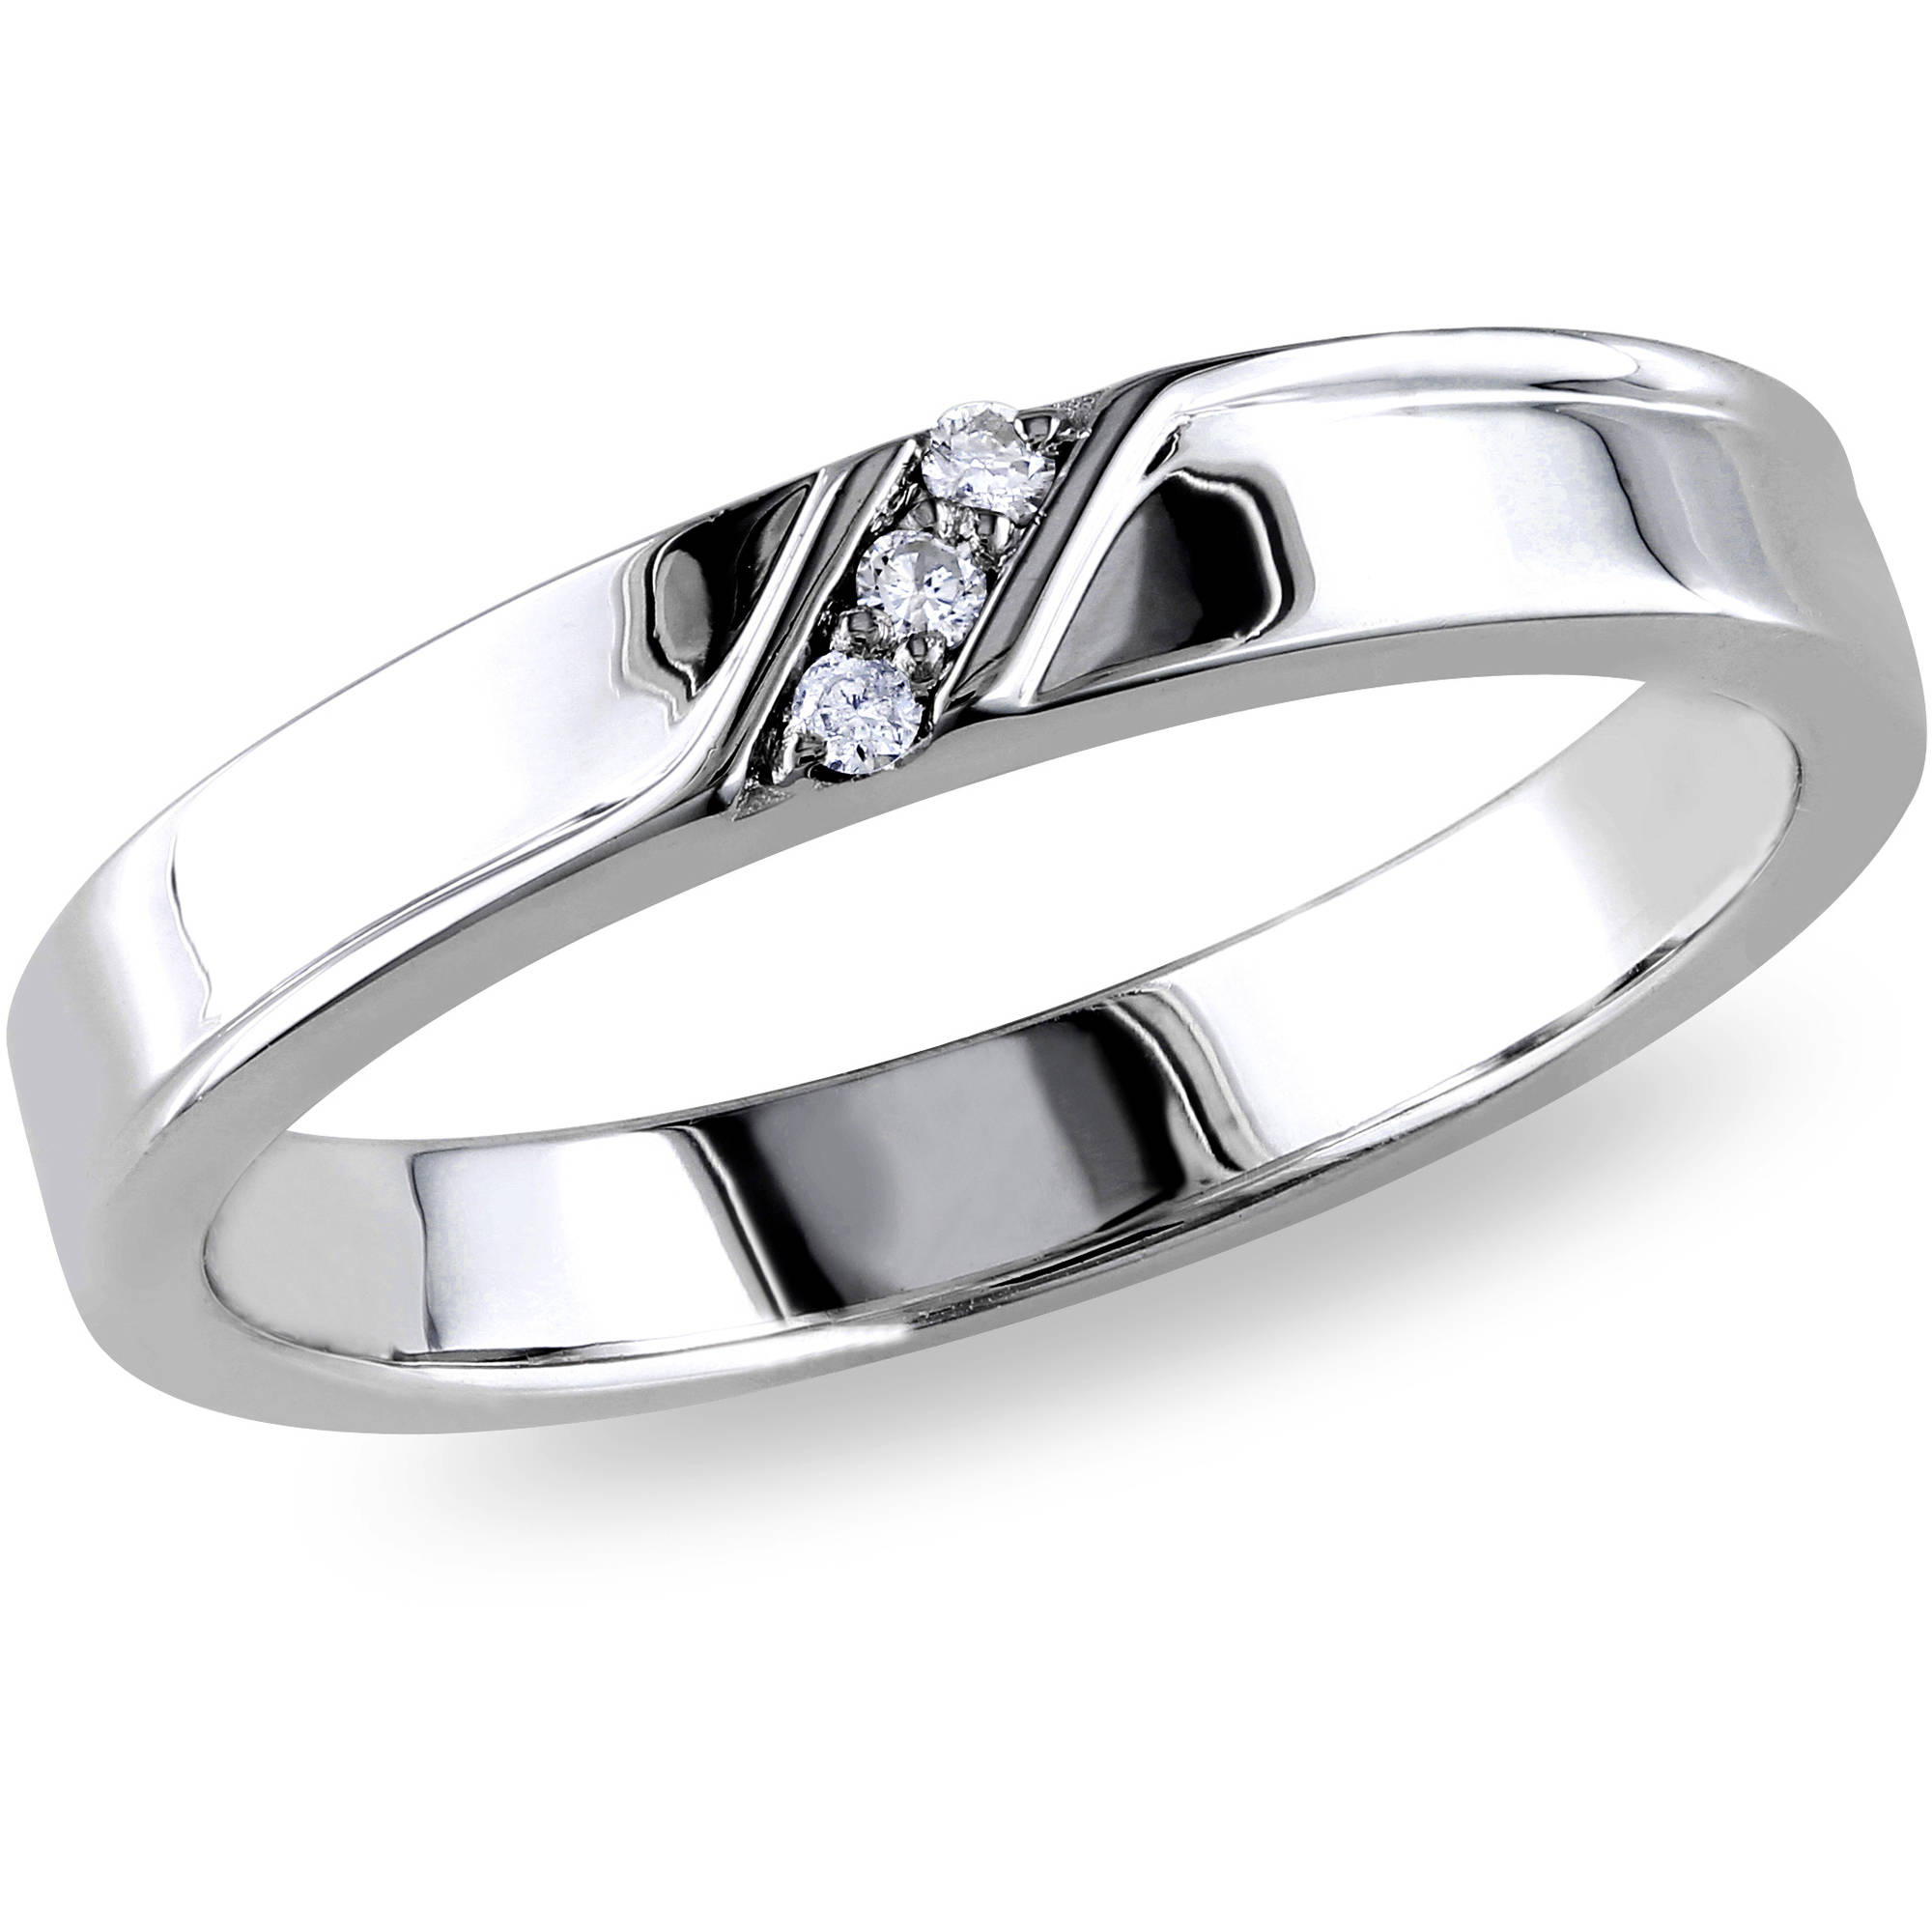 Miabella Men's Diamond-Accent Sterling Silver Wedding Band